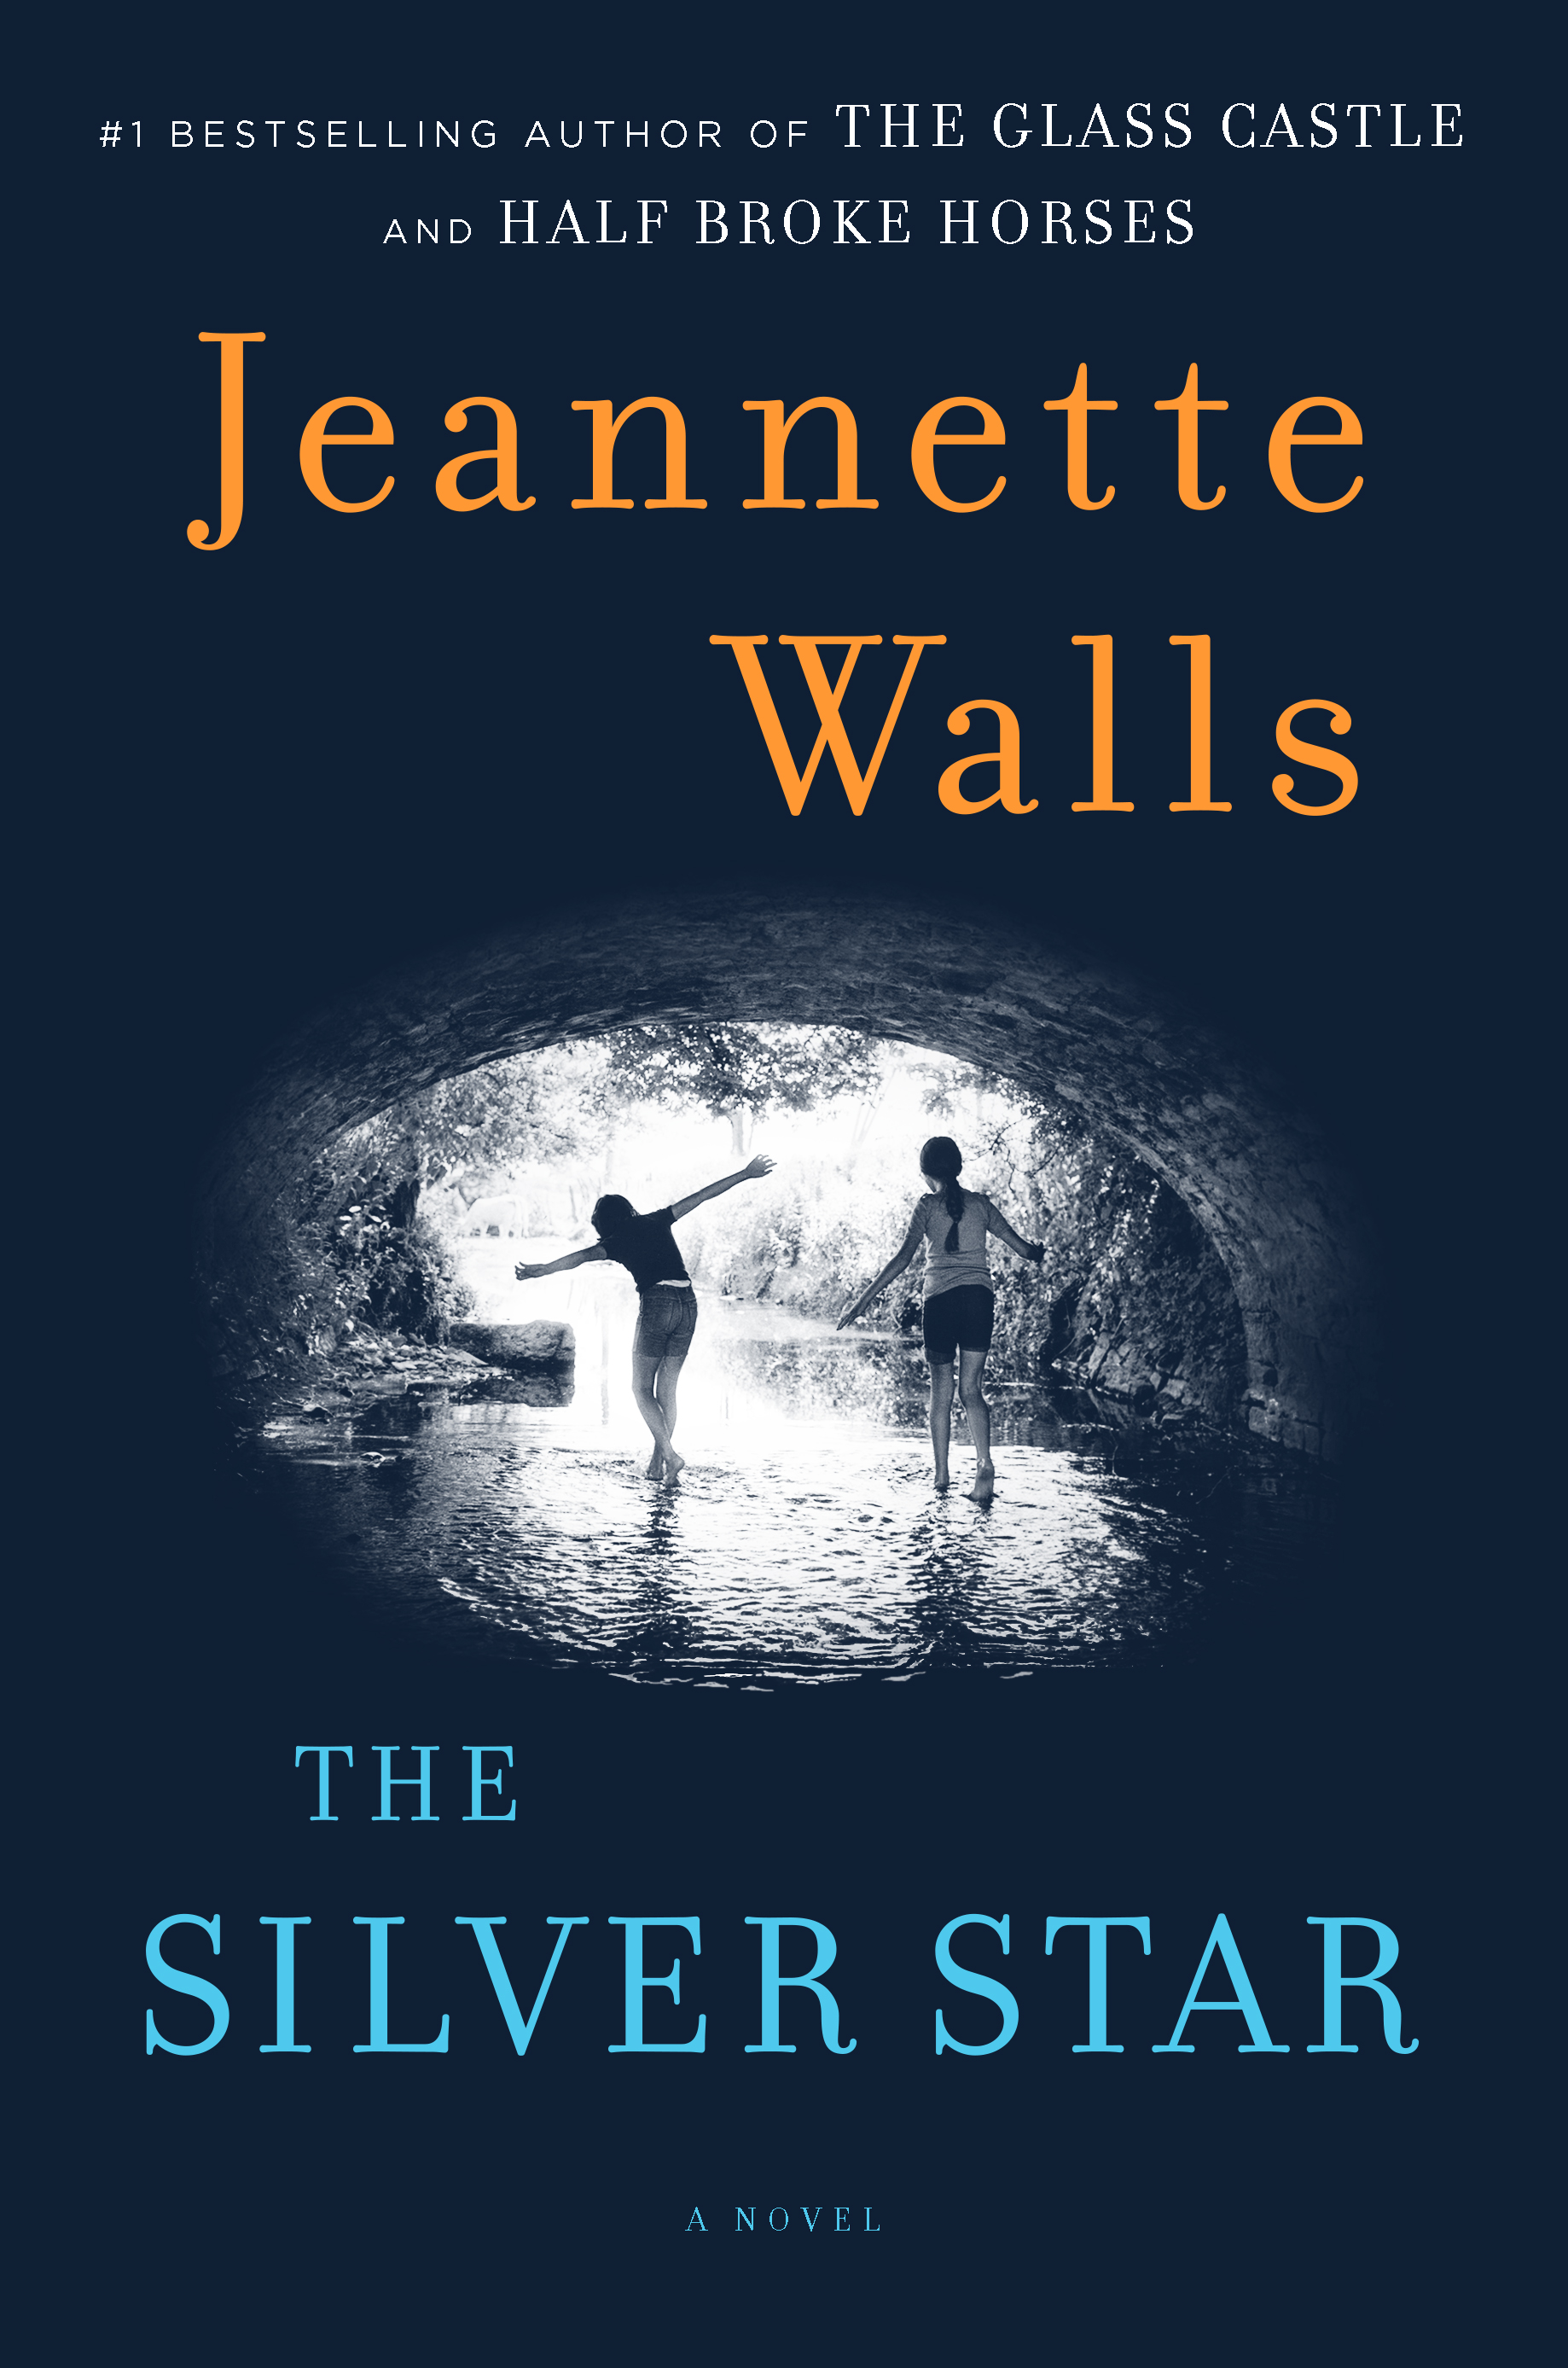 Book Cover Image (jpg): The Silver Star